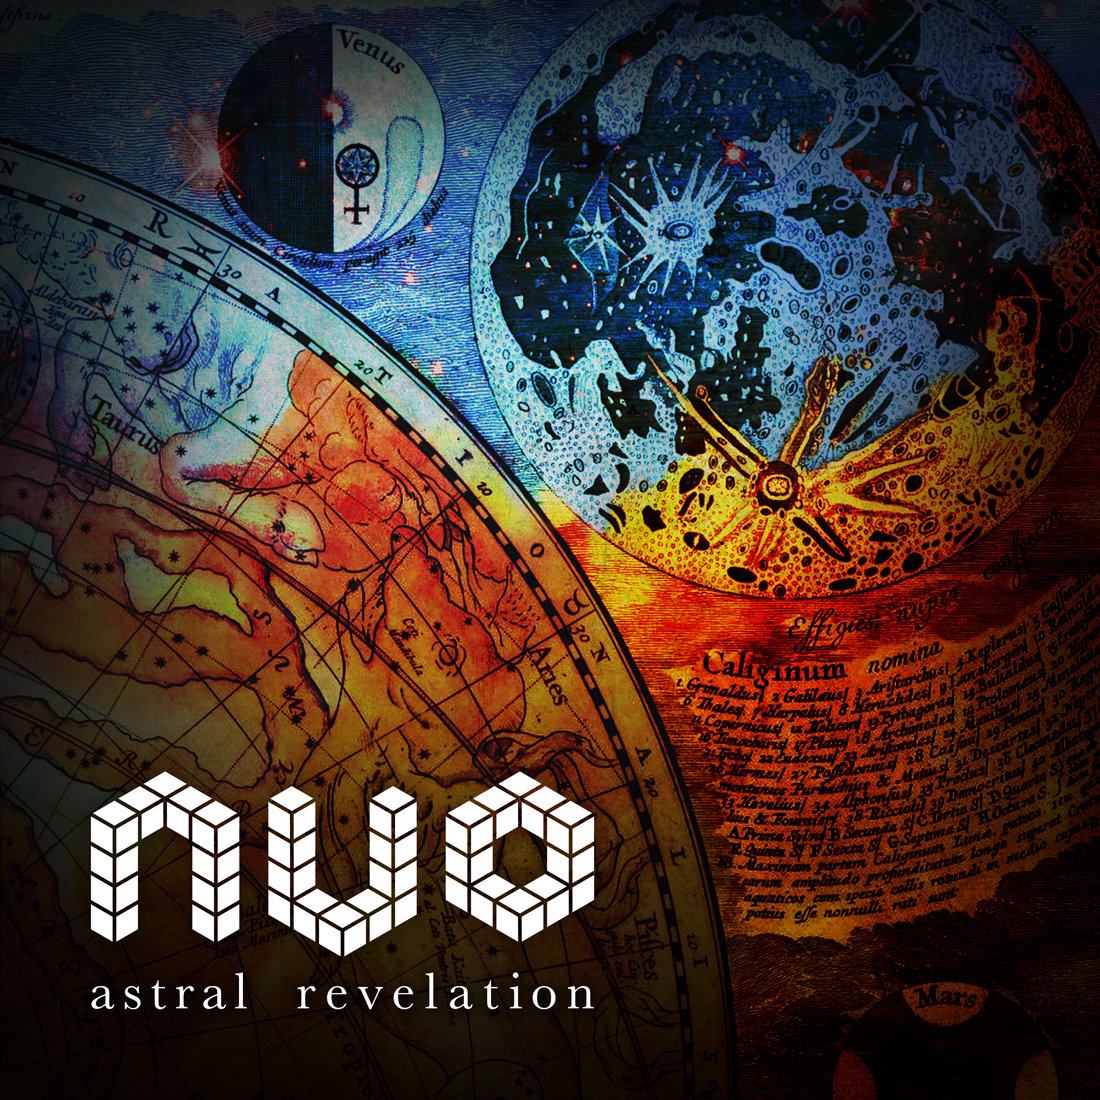 NVO - Astral Revelation (Nym Remix) @ 'Astral Revelation' album (deep house, electro house)